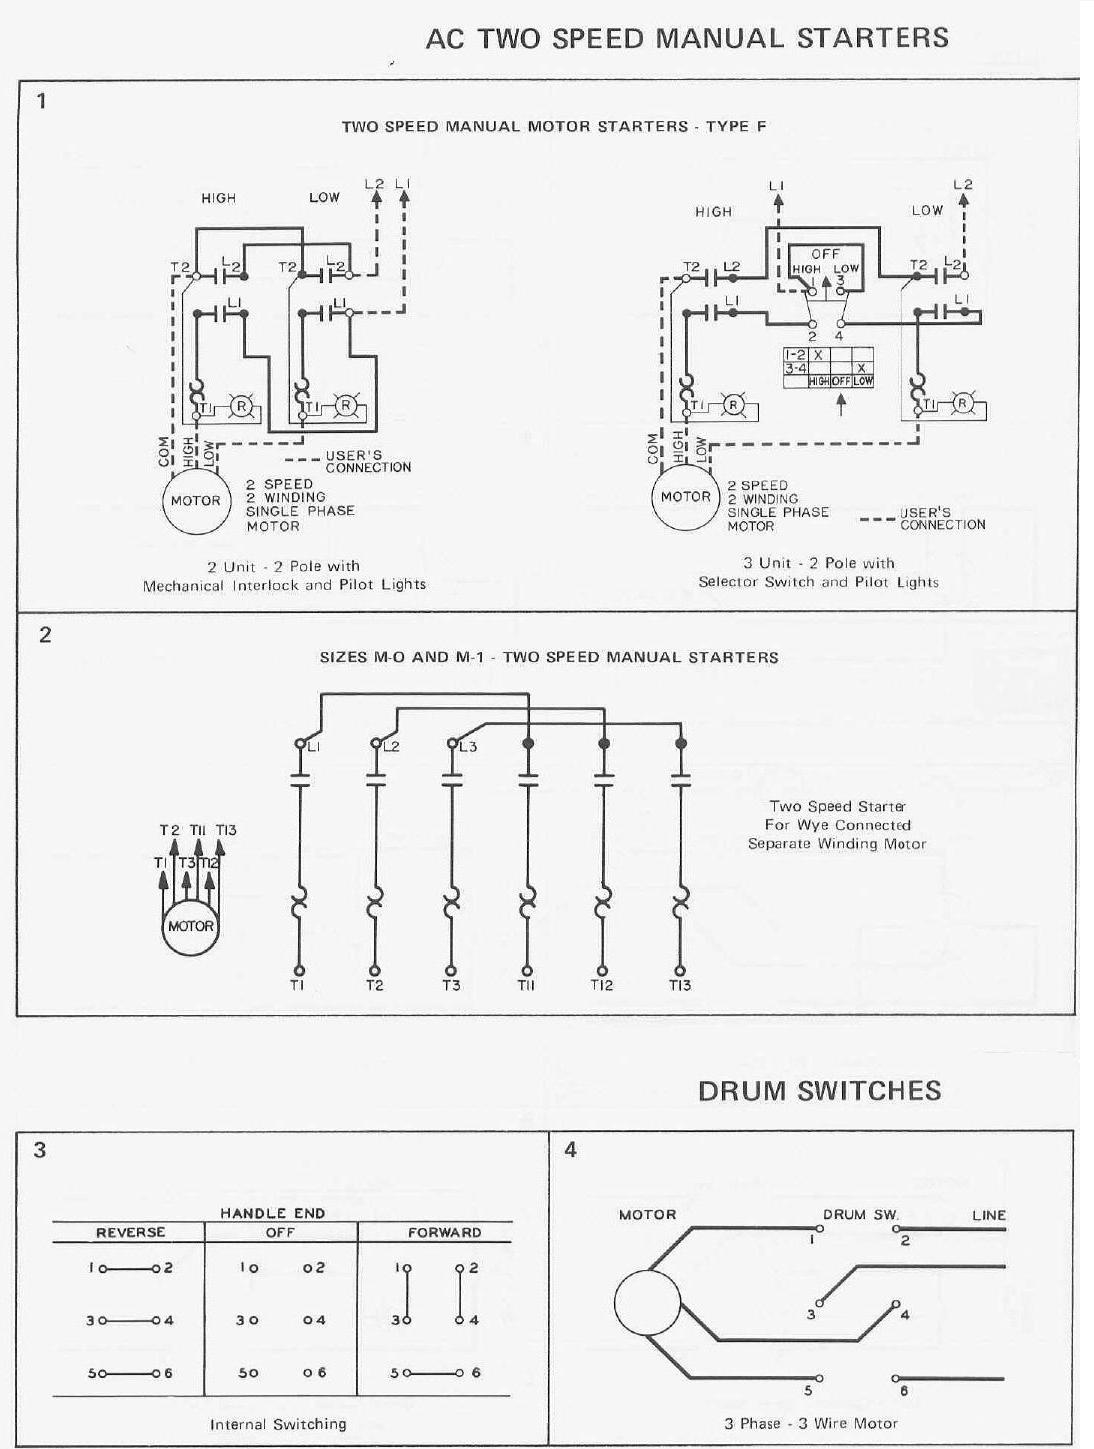 reversing drum switch wiring diagram 1999 suburban 3 phase motor impremedia